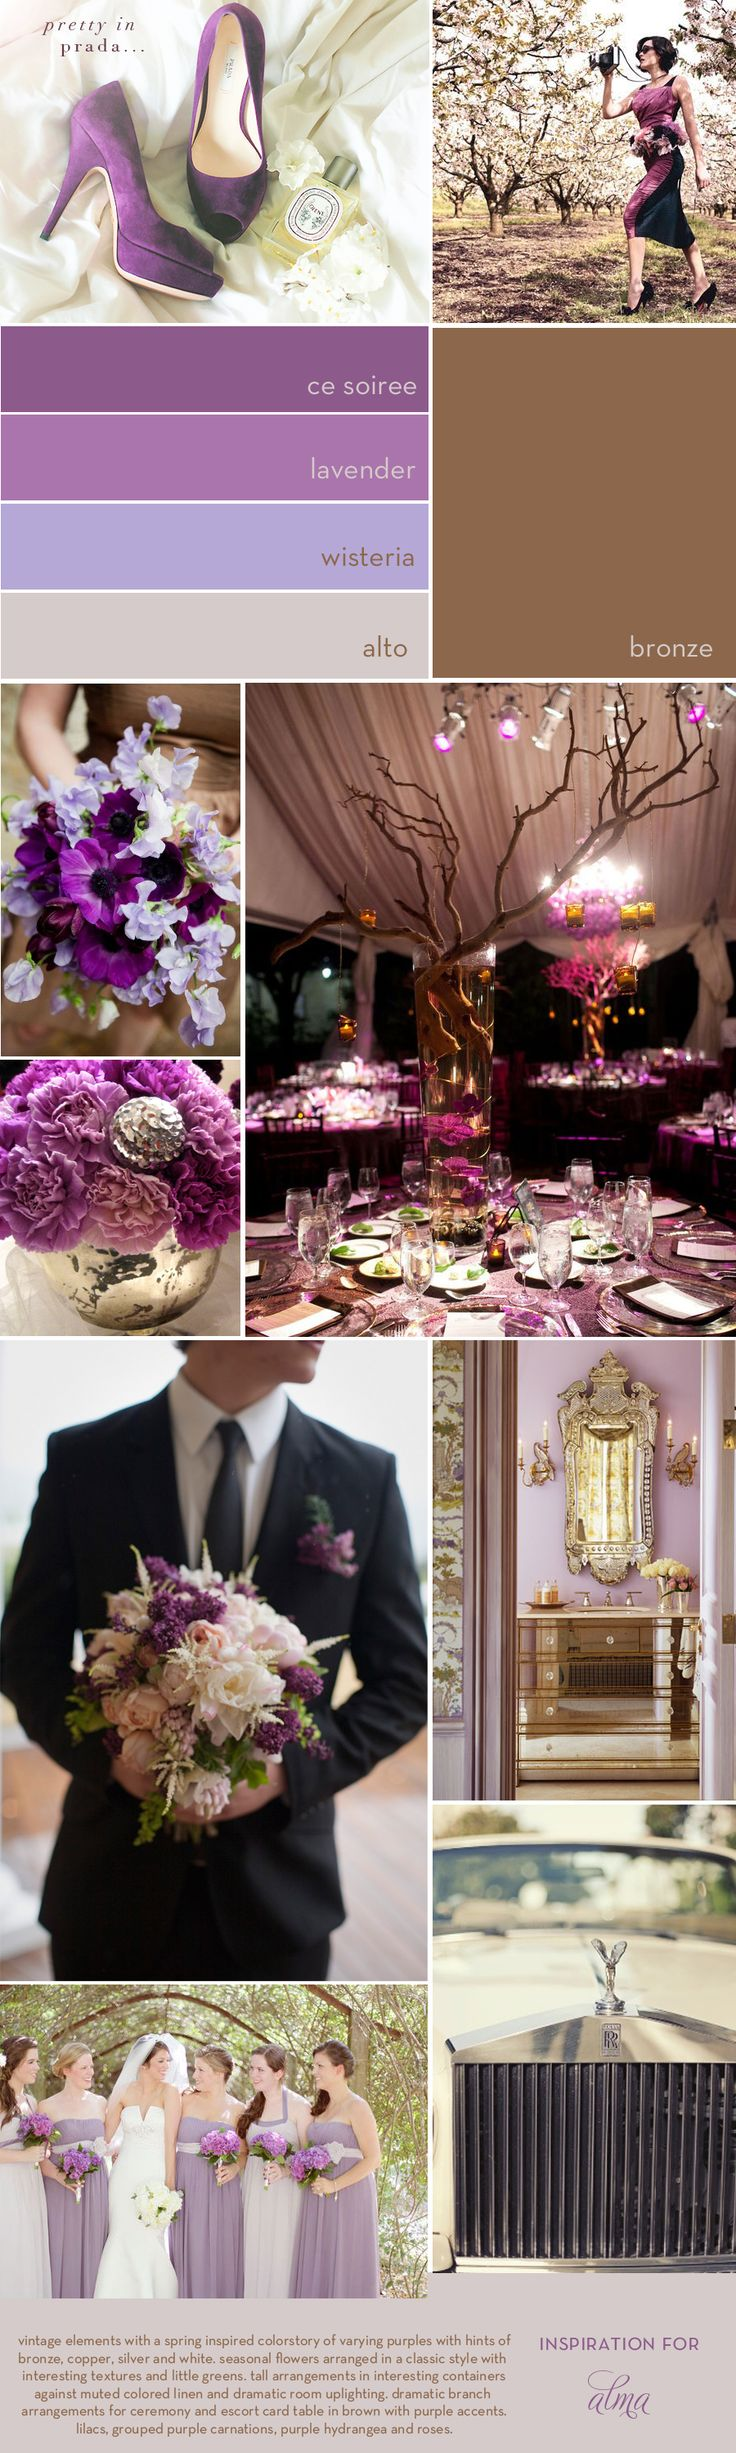 Inspired by Alma: Vintage Purple and Bronze Inspiration Board